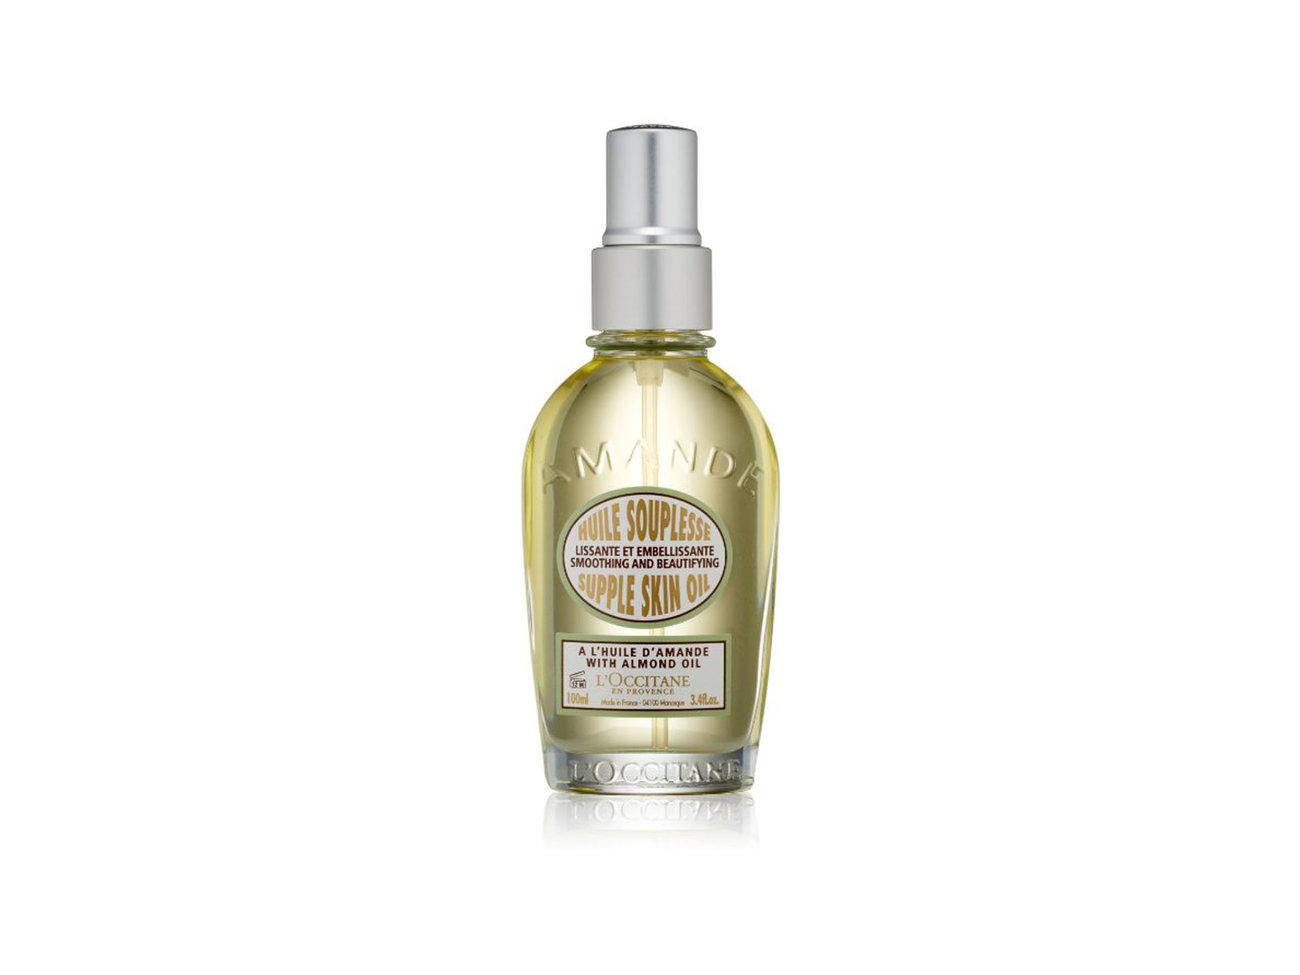 LOccitane-Almond-Skin-Oil-amazon-prime-BESTSHOP1215.jpg